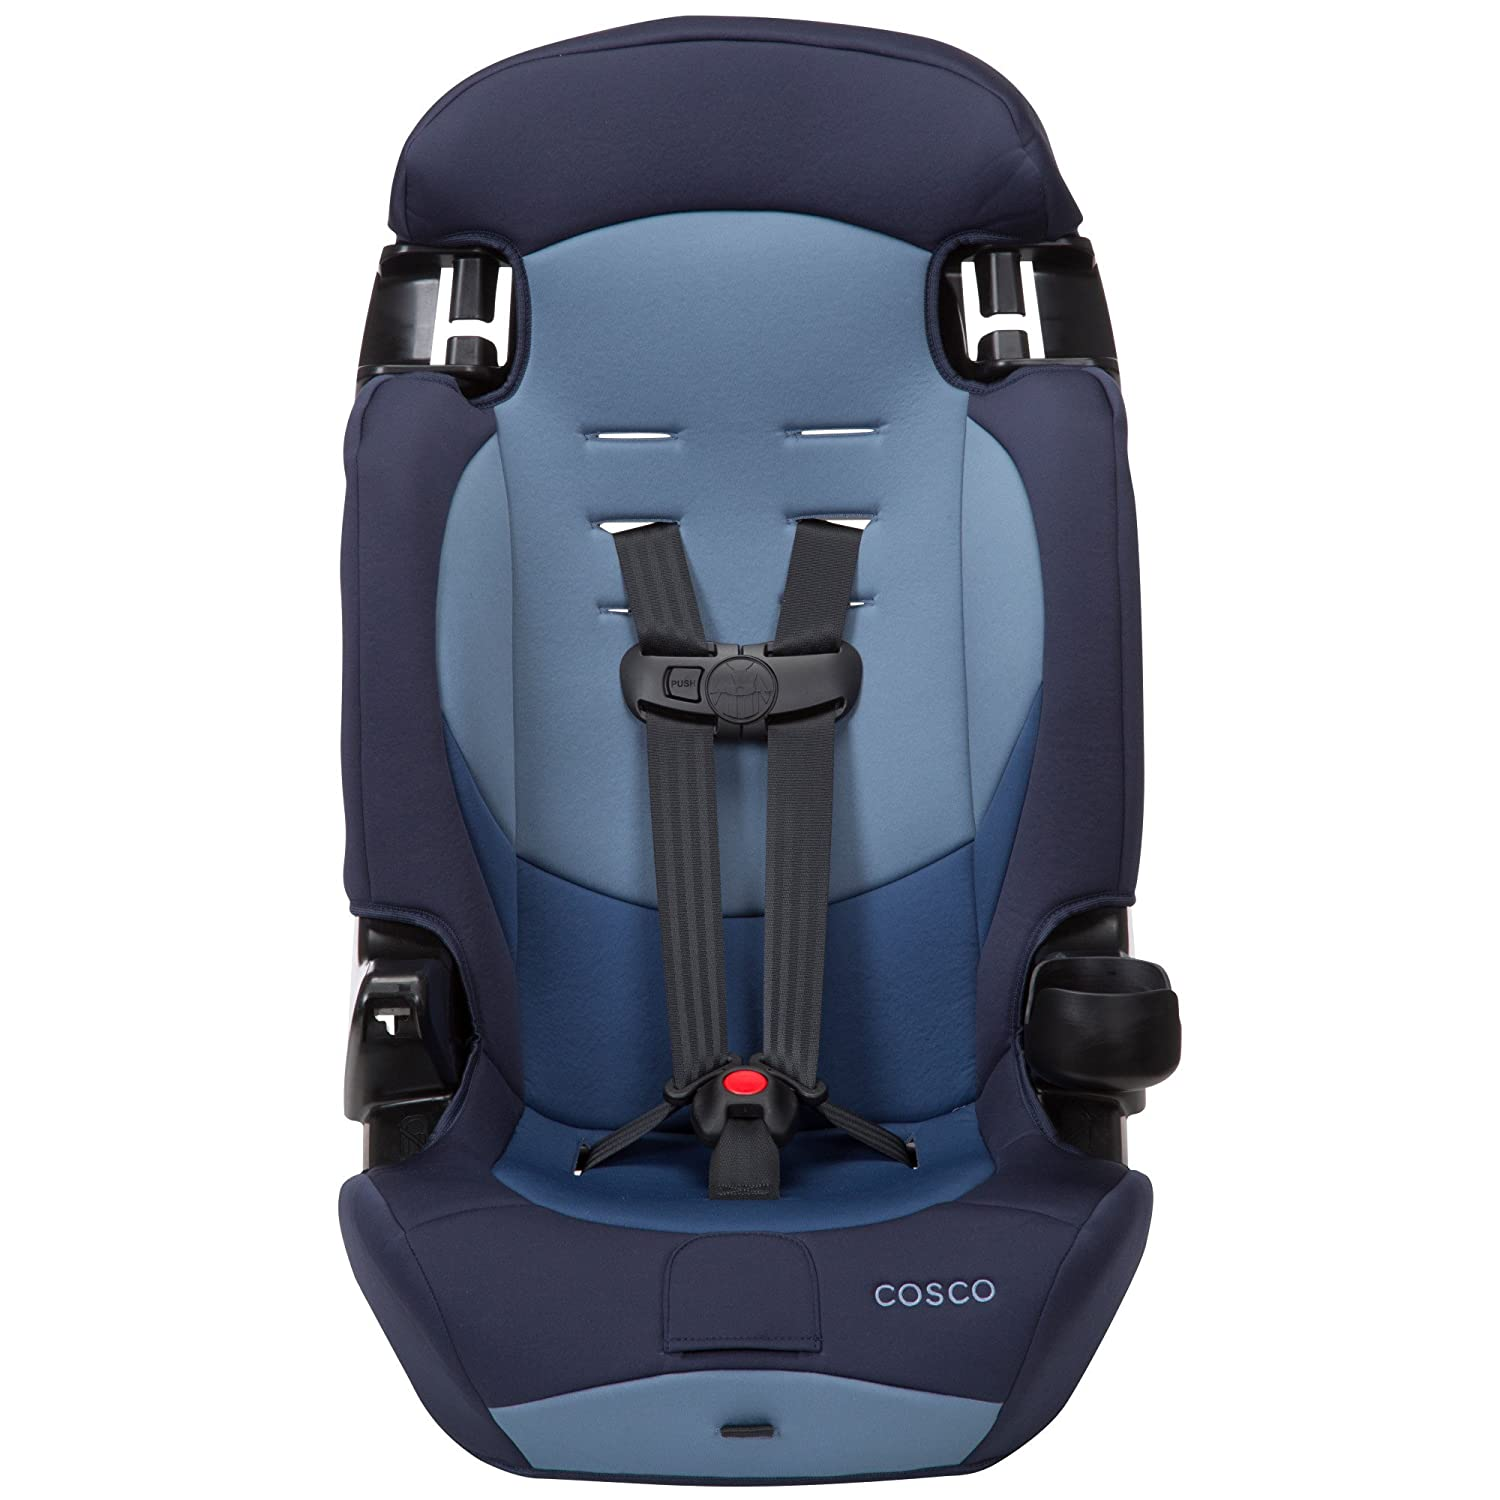 Cosco Finale Booster Car Seat